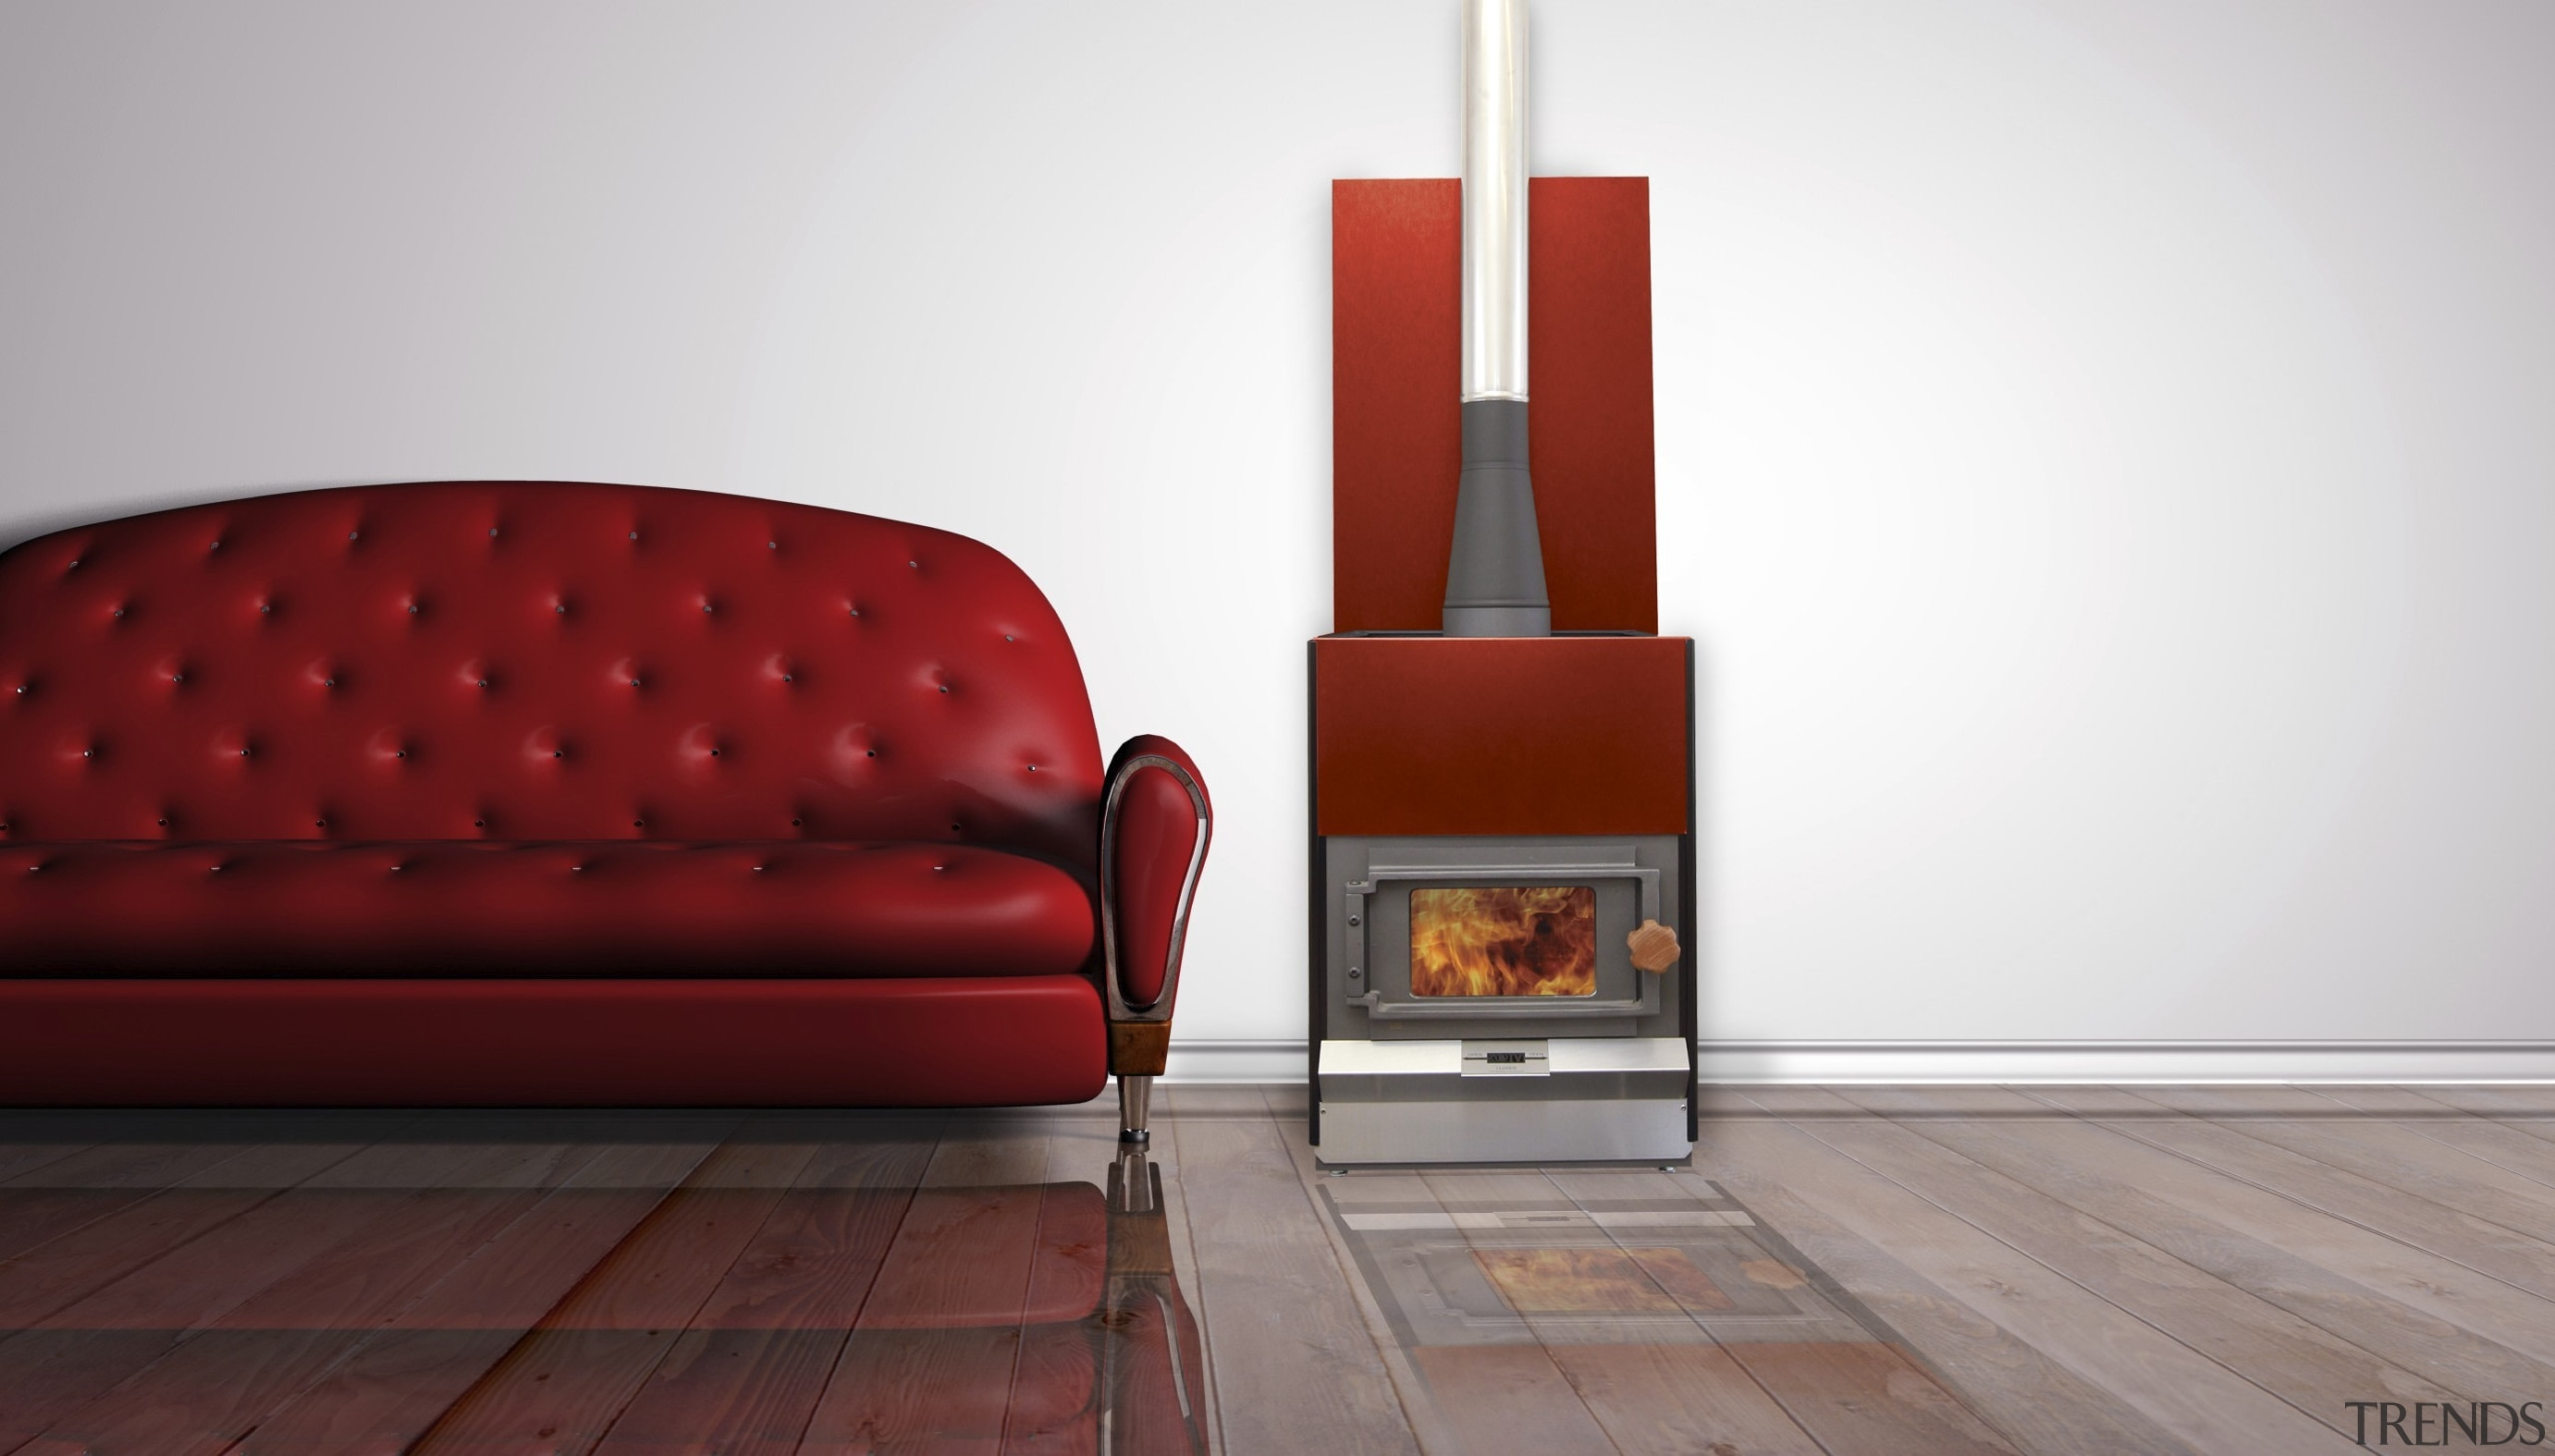 Pyroclassic IV with Wineberry panels - Pyroclassic IV chair, couch, floor, flooring, furniture, hardwood, hearth, home appliance, interior design, orange, wood, wood burning stove, white, red, gray